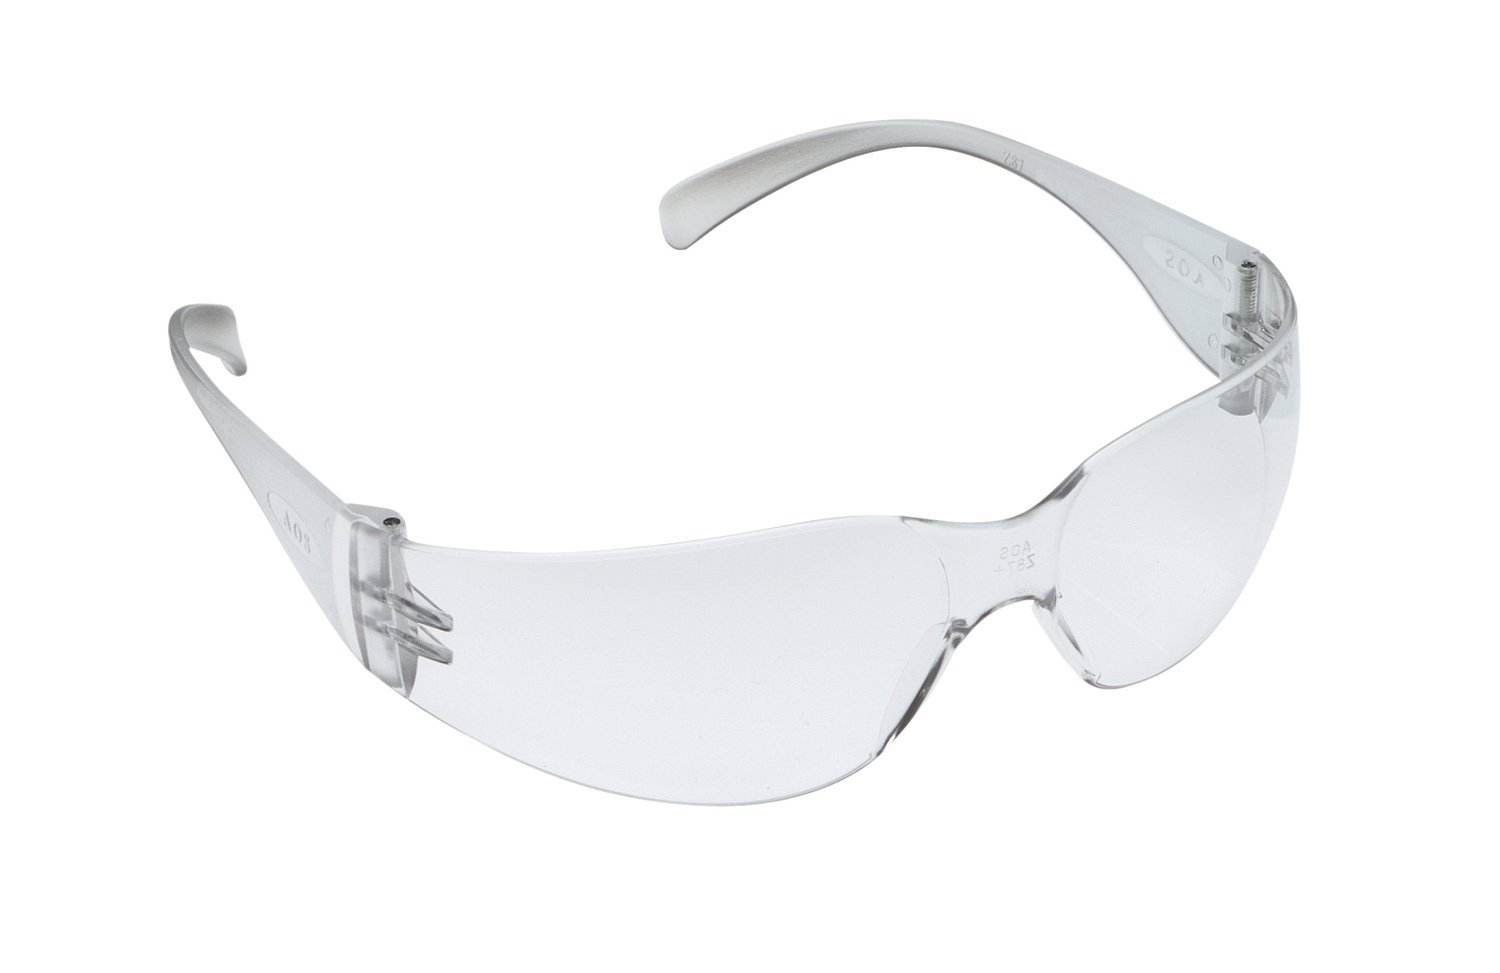 3M Virtua 11329-00000-100 Clear Polycarbonate Standard Safety Glasses - 99.9 % UV Protection - Wrap Around Frame - 70071539475 [PRICE is per PAIR]